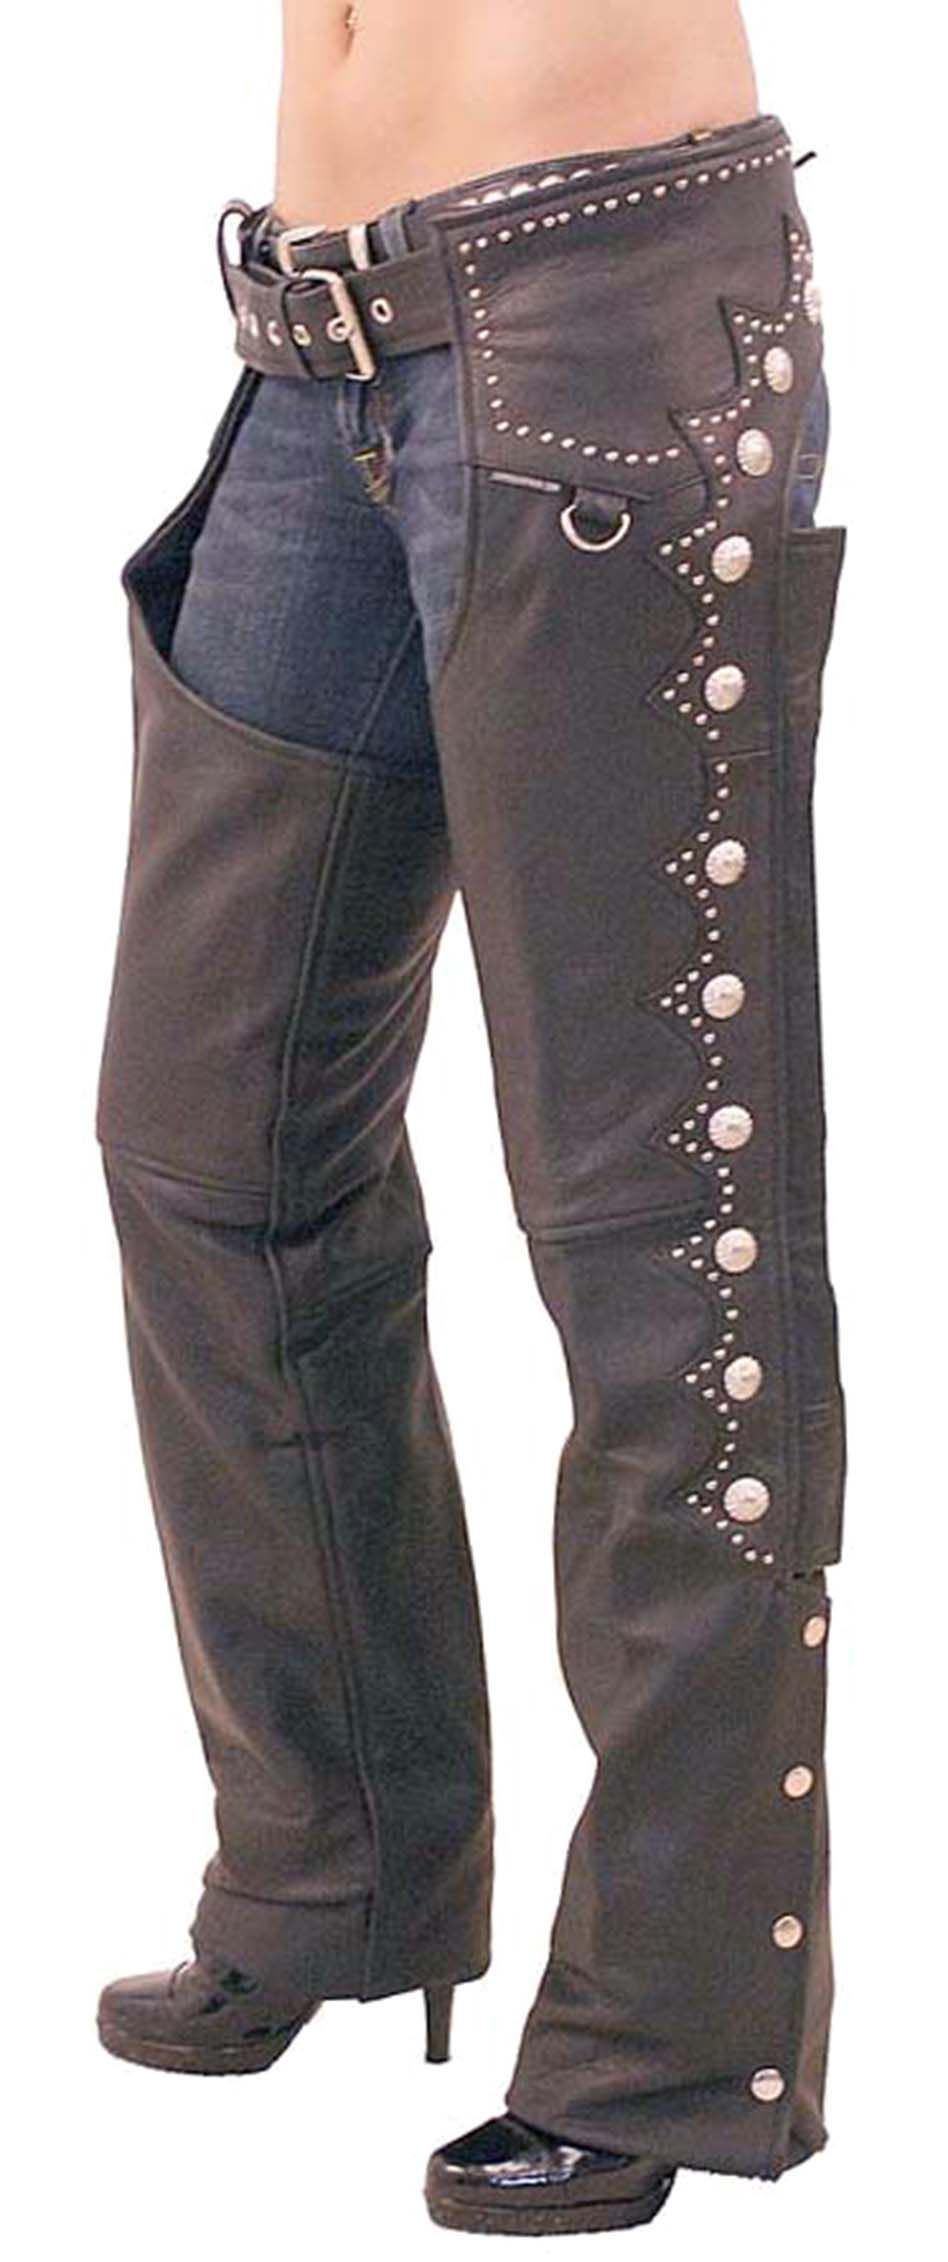 First Manufacturing Rally Leather Chaps | Motorcycle chaps